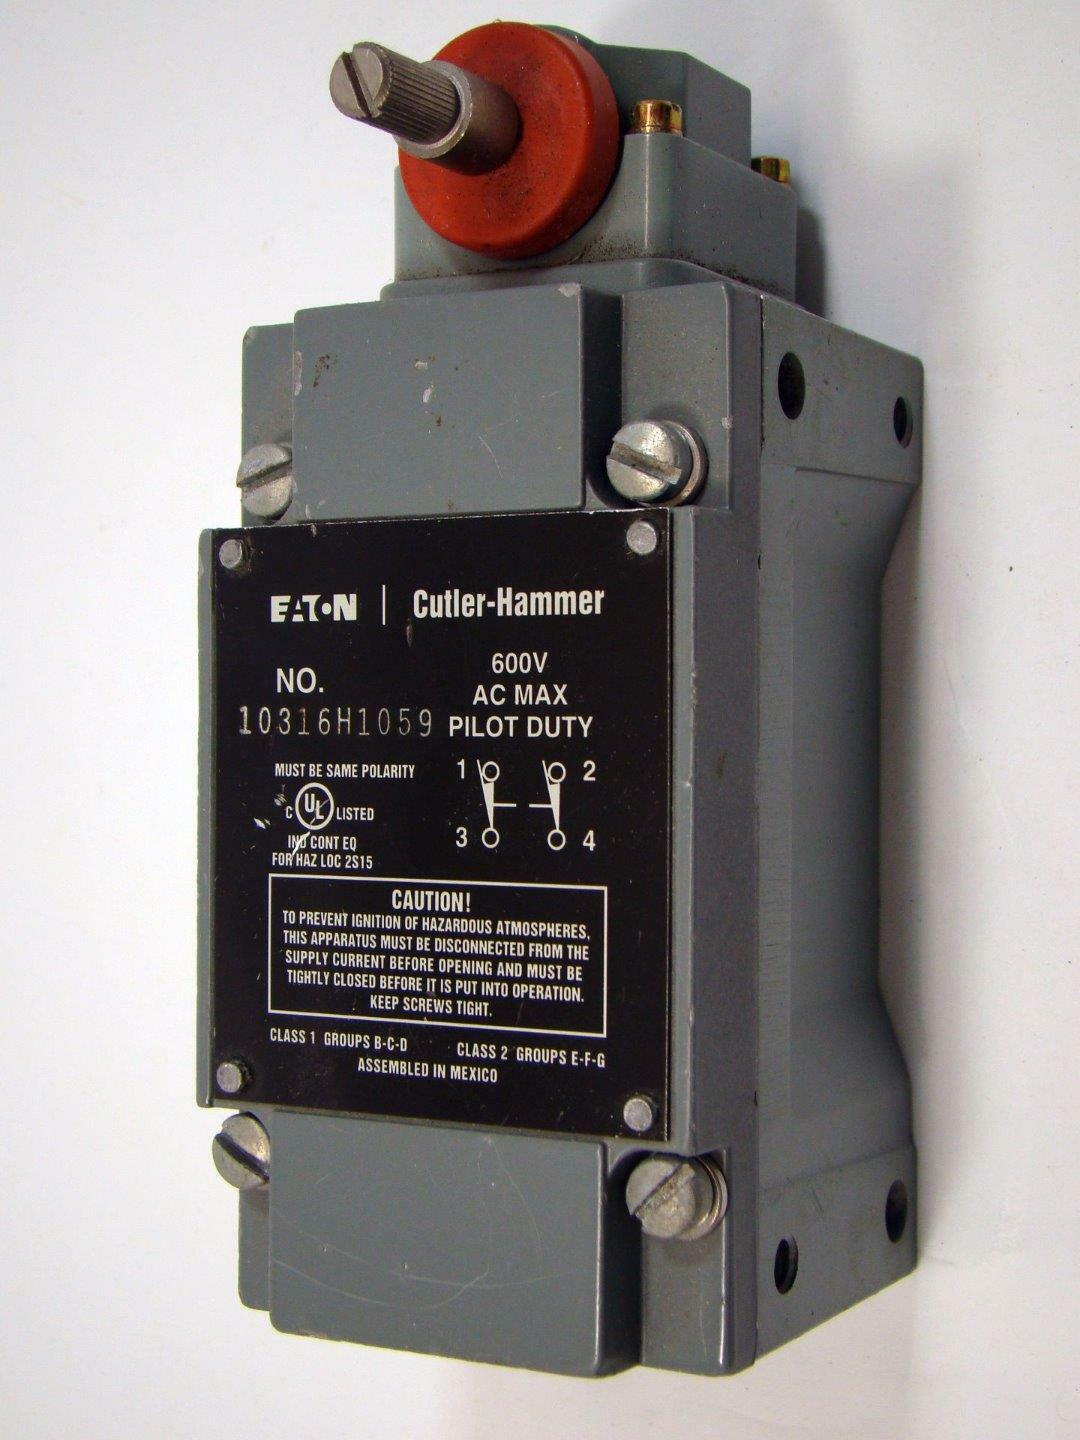 EATON CUTLER-HAMMER 10316H1059 Limit Switch Used - $74.75 | PicClick